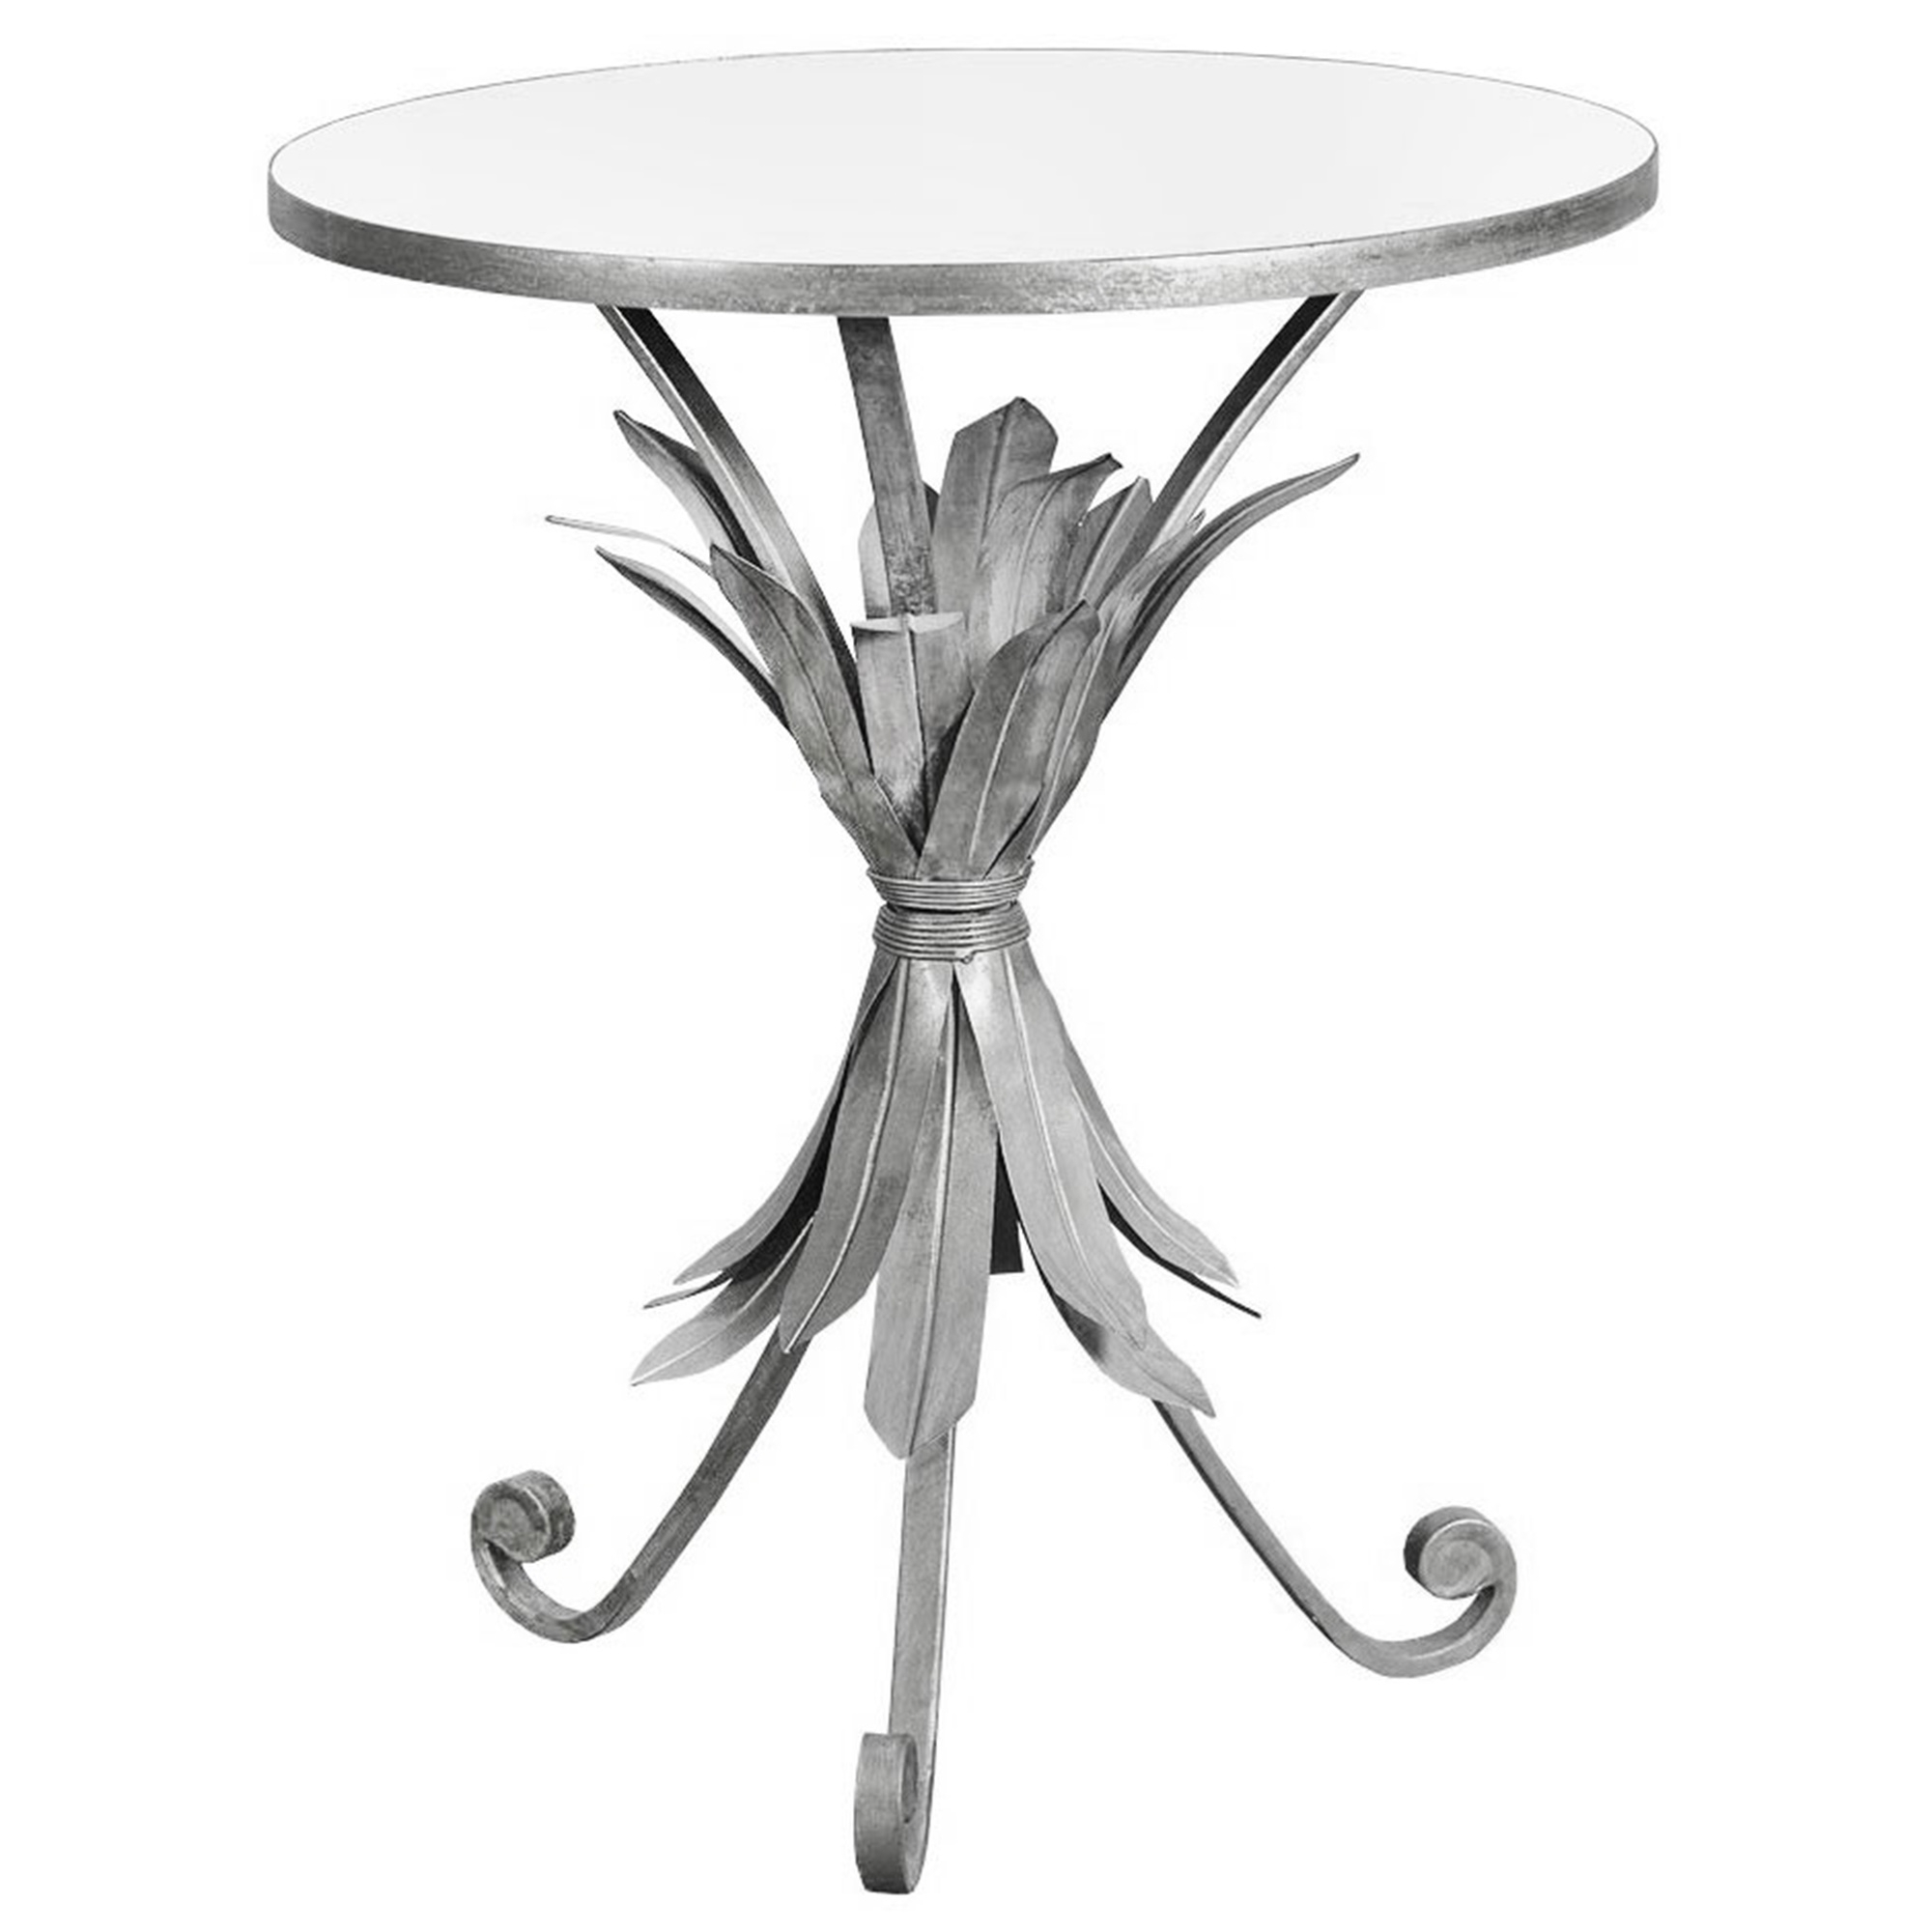 Silver Pineapple Gin Shu Parisienne Metal Coffee Table French